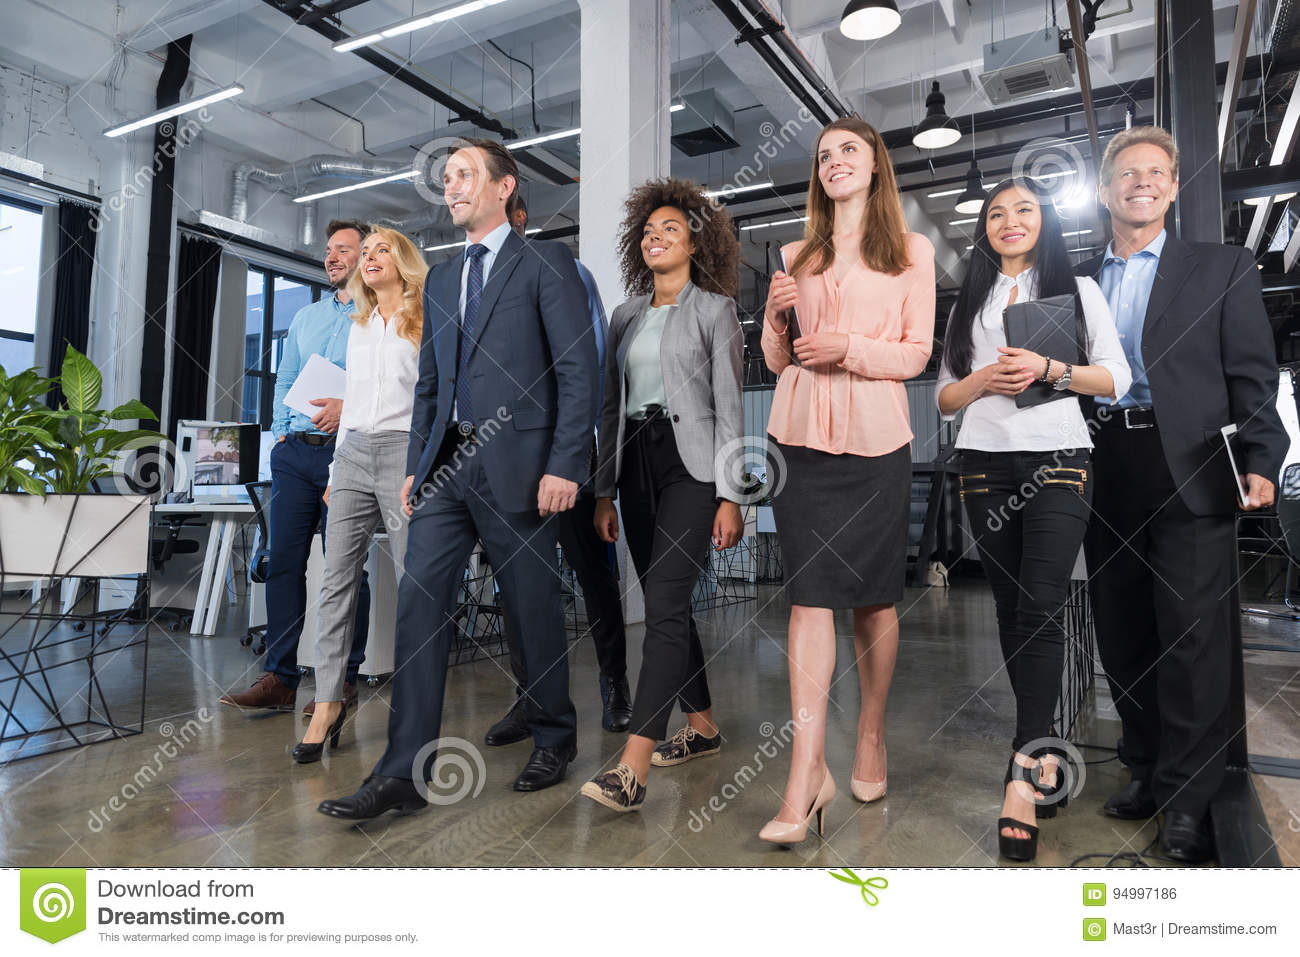 Full Length Business People Team Walking In Modern Office, Confident Businessmen And Businesswomen In Suits Diverse With